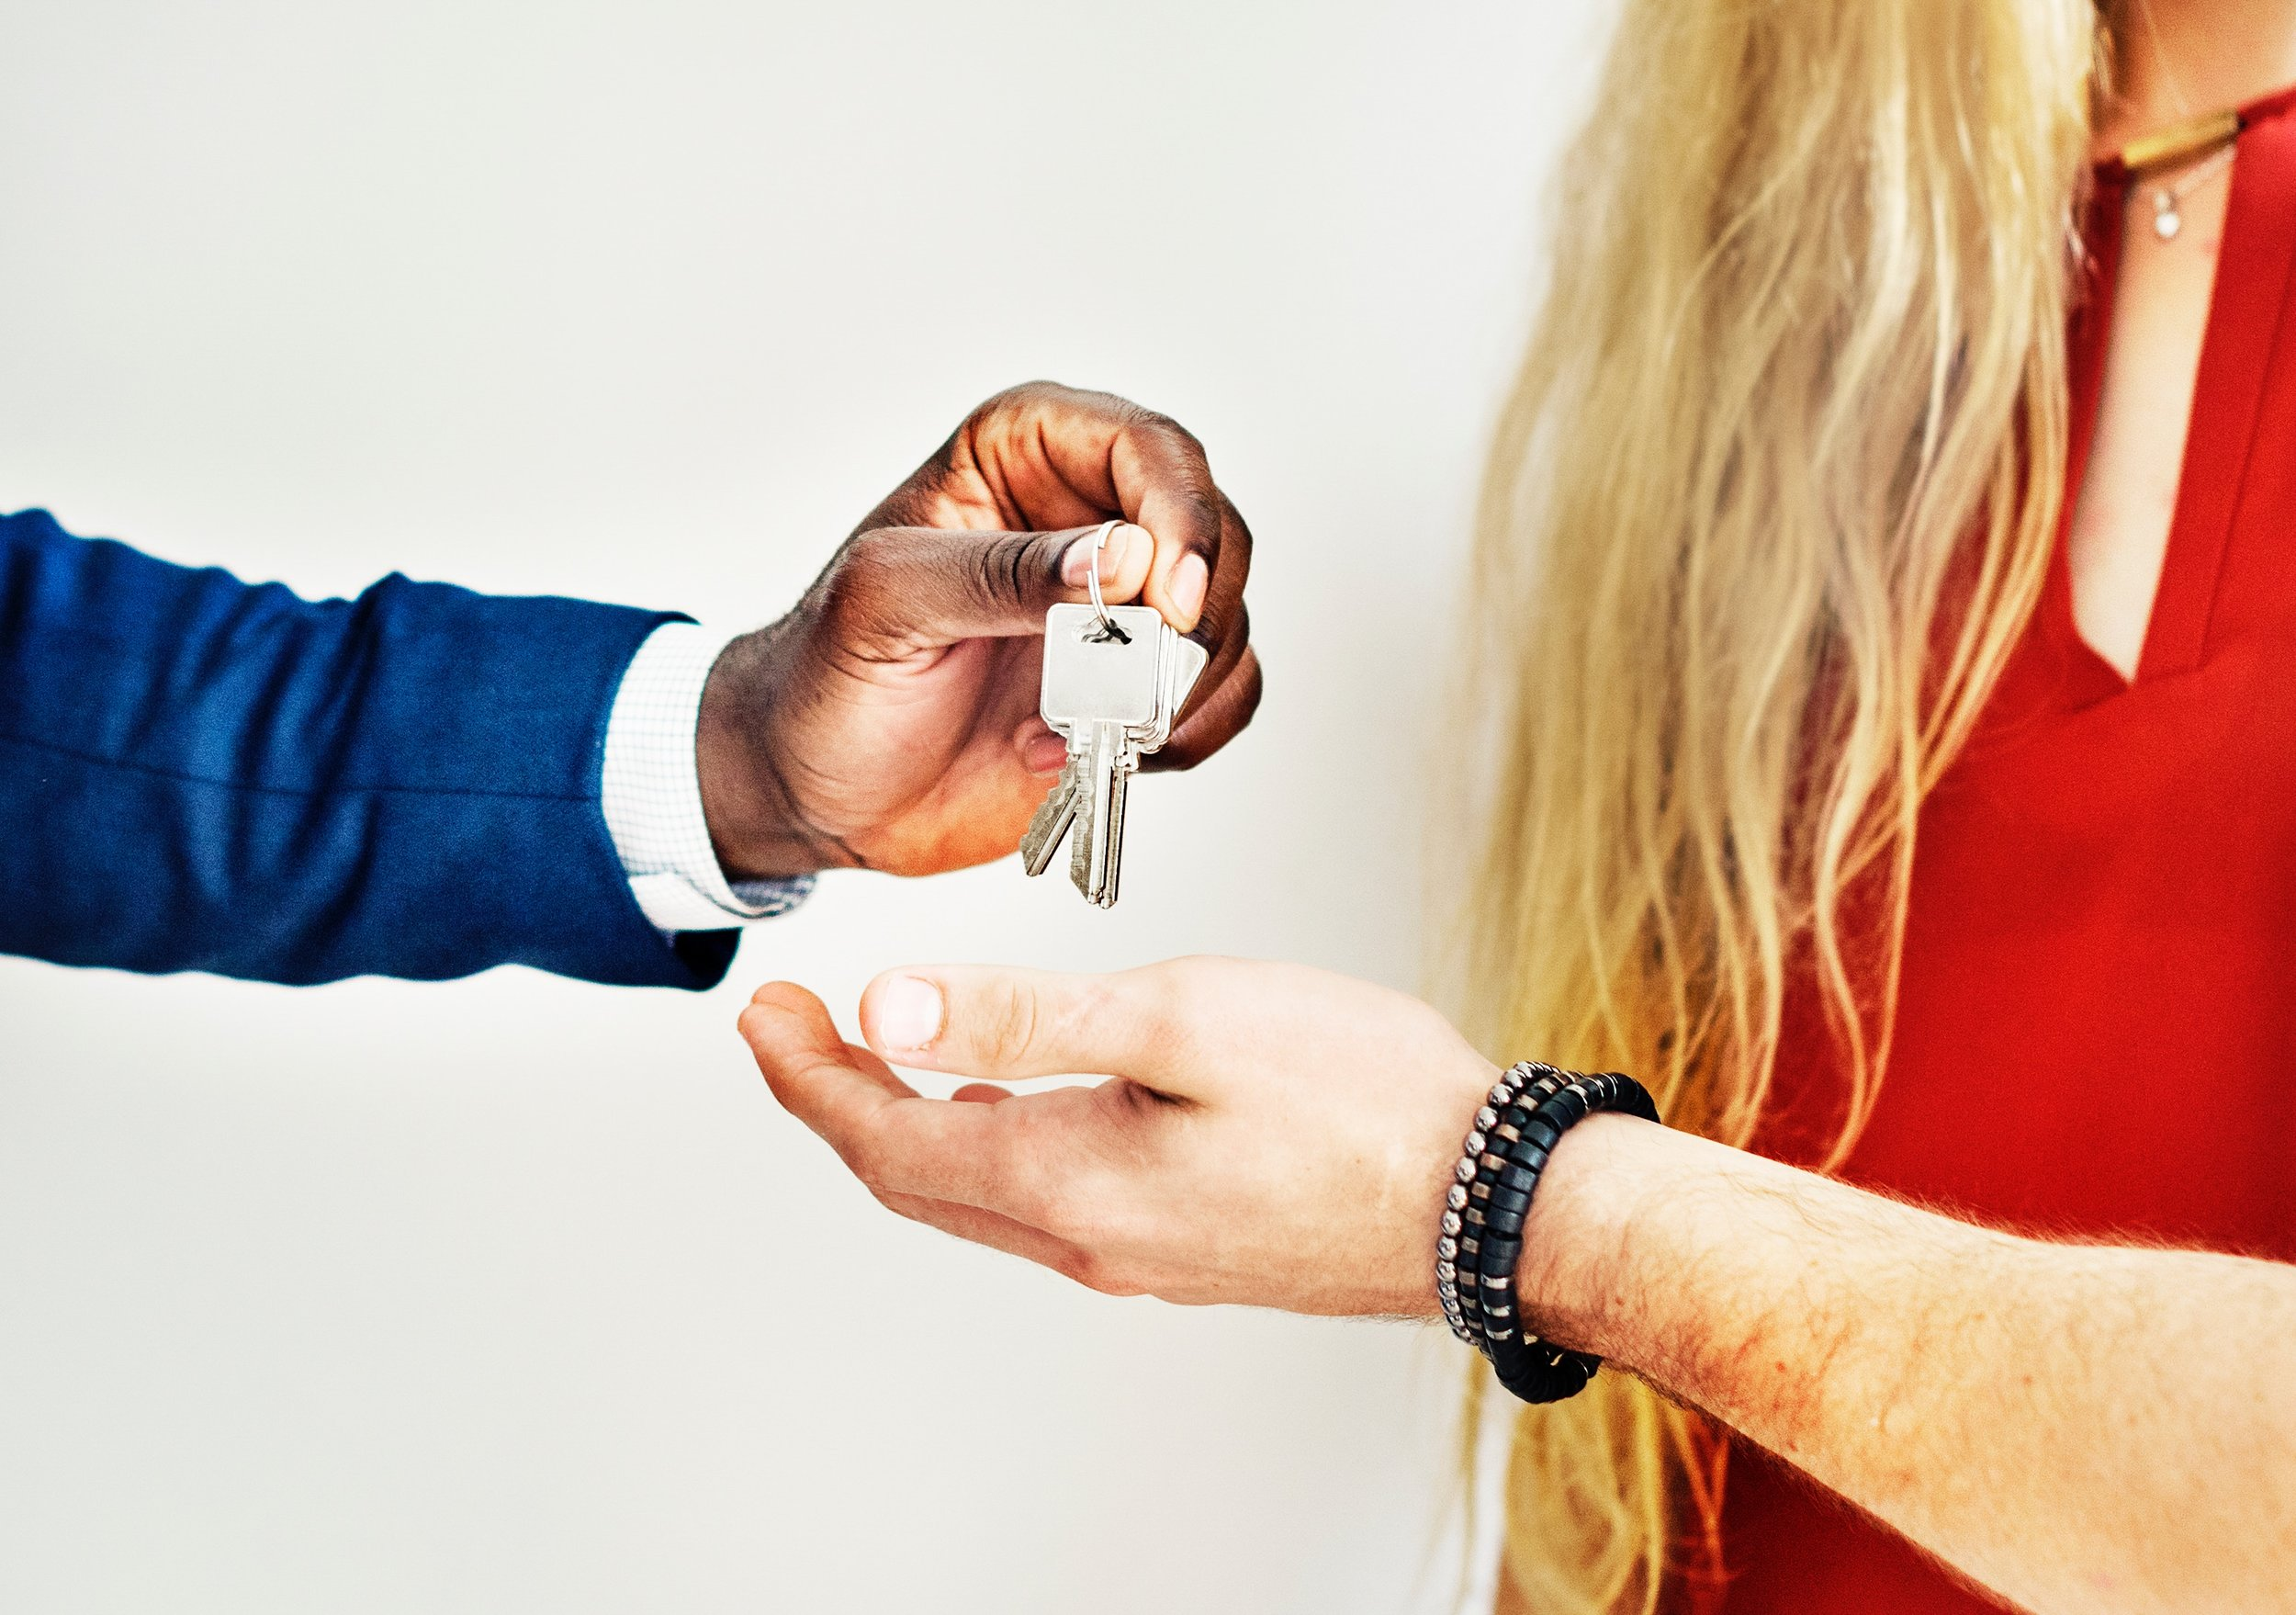 How Much Do You Really Need to Save to Buy a Home? - Contrary to popular opinion, the American Dream of homeownership is not out of reach for Millennials.